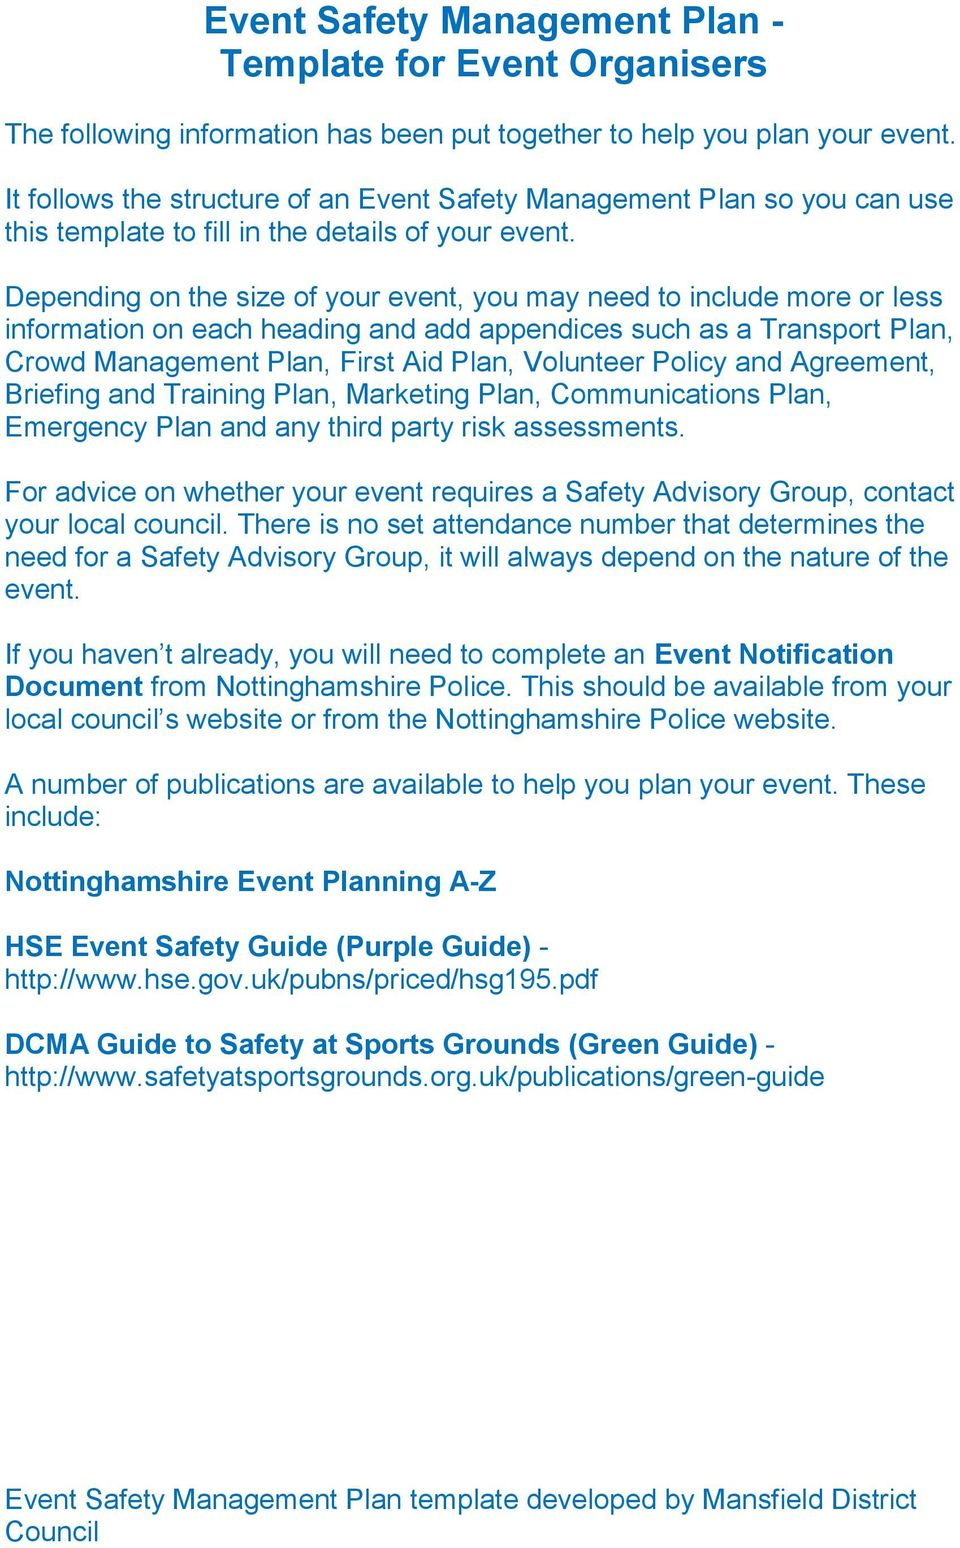 Event Safety Management Plan - Template for Event Organisers - PDF